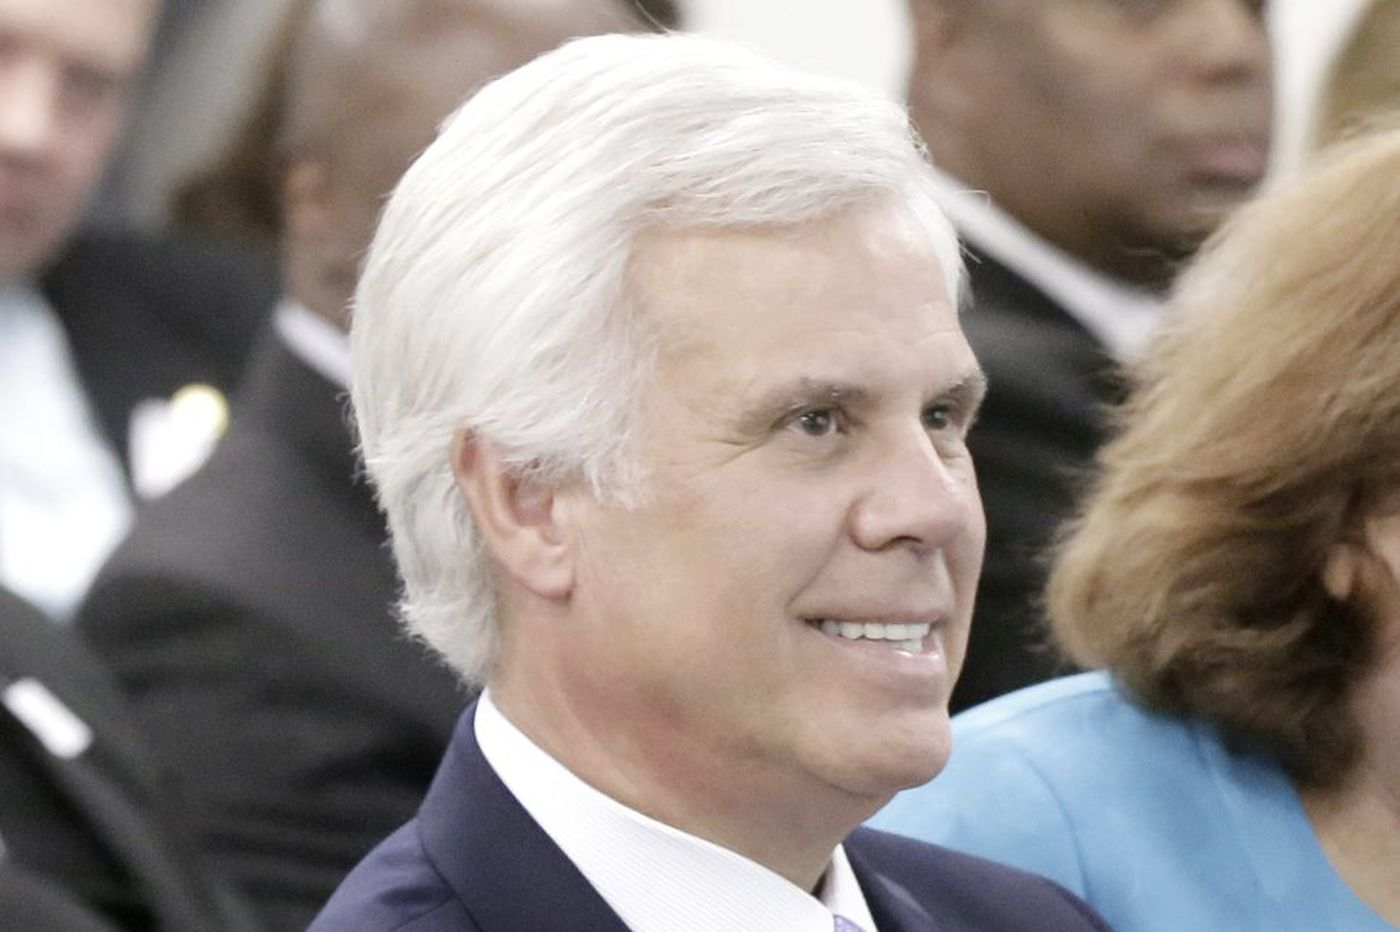 Tap on Norcross' phones stemmed from Philly union probe, records show